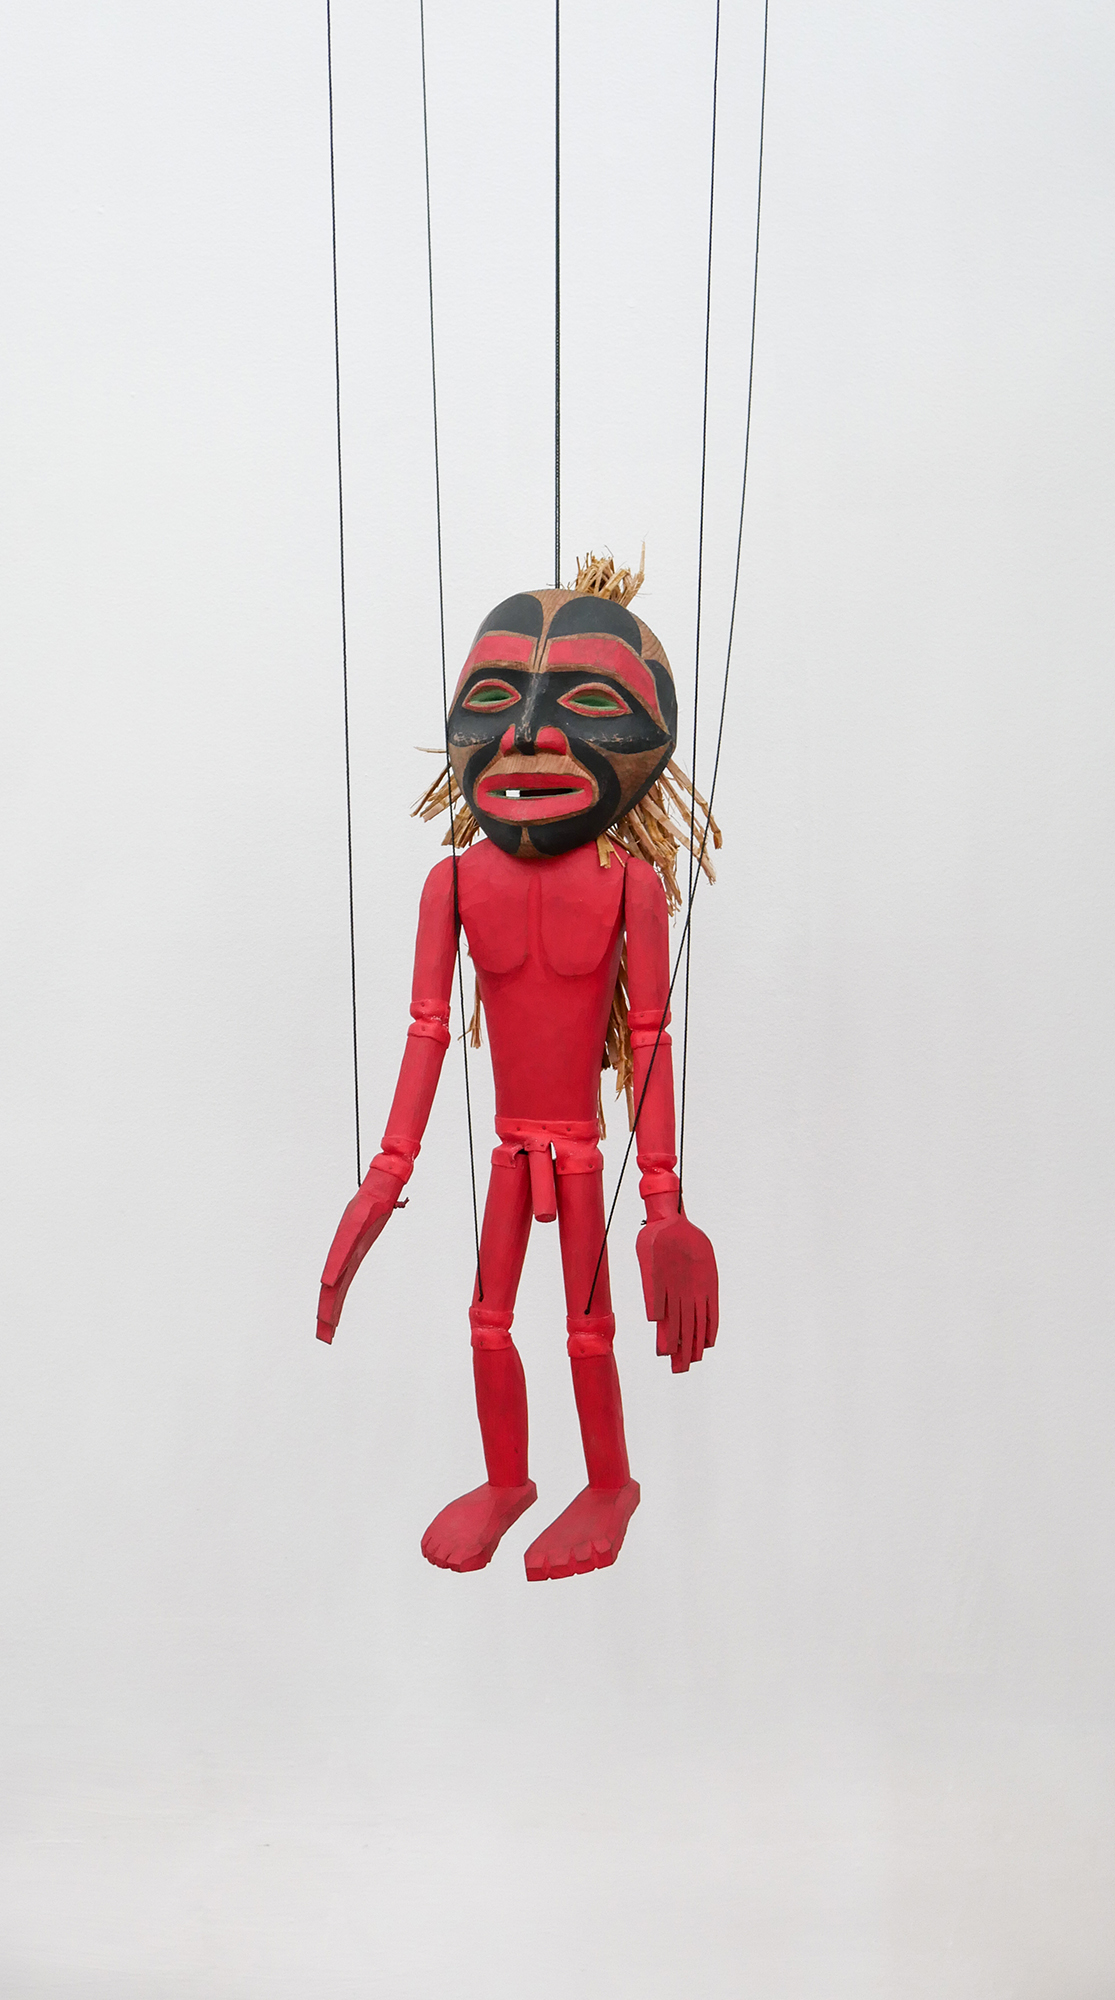 Ulala Dance Puppet/Marionette, 2019